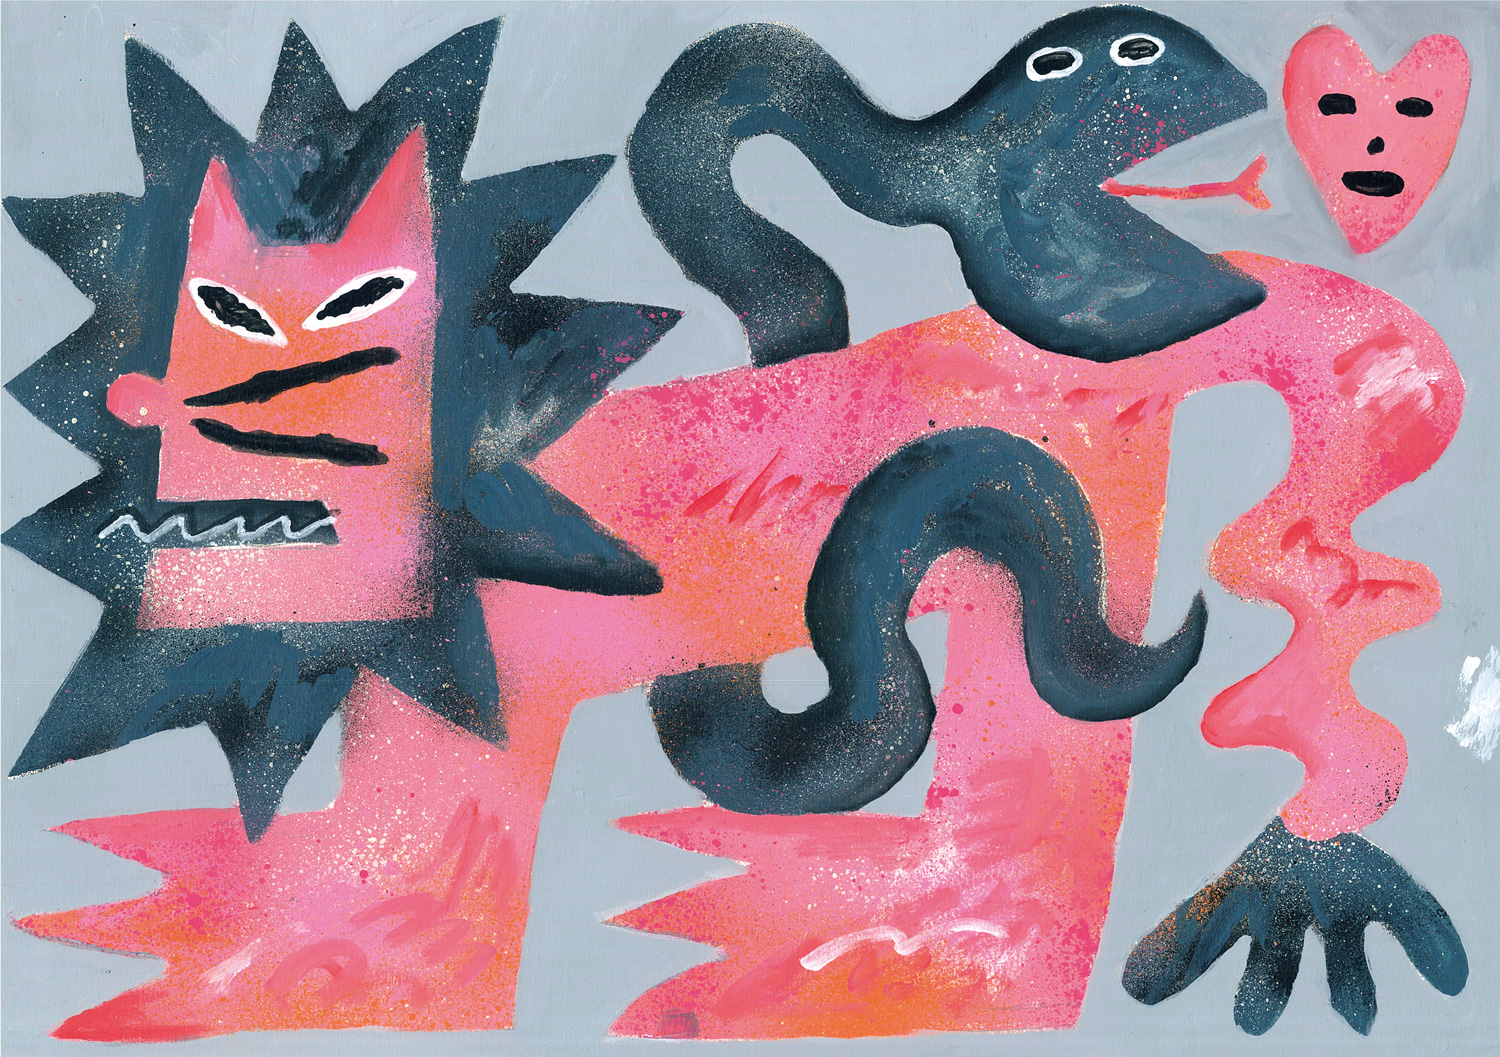 A pink lion intertwined with a snake in a painting by Kentaro Okawara.